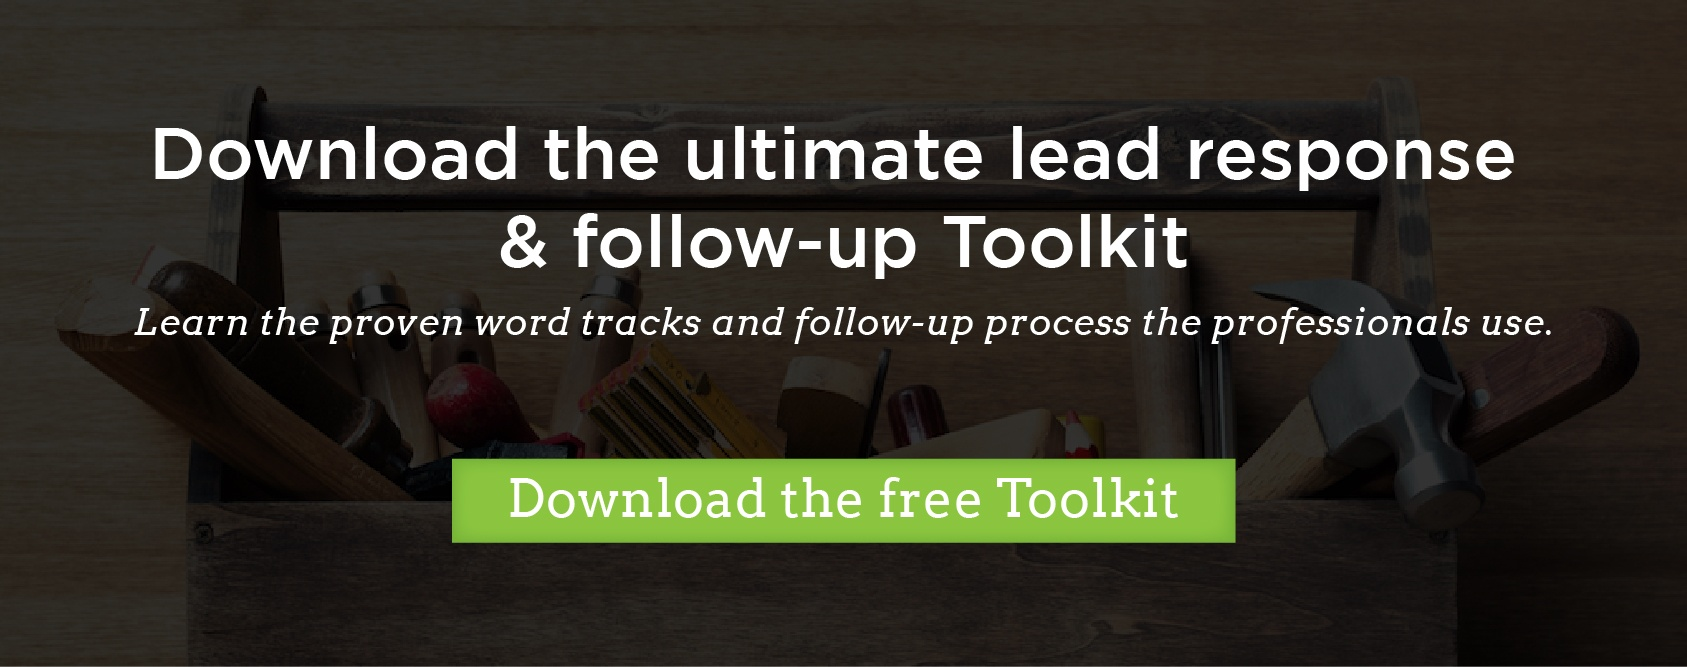 Download the ultimate lead response and follow-up process toolkit